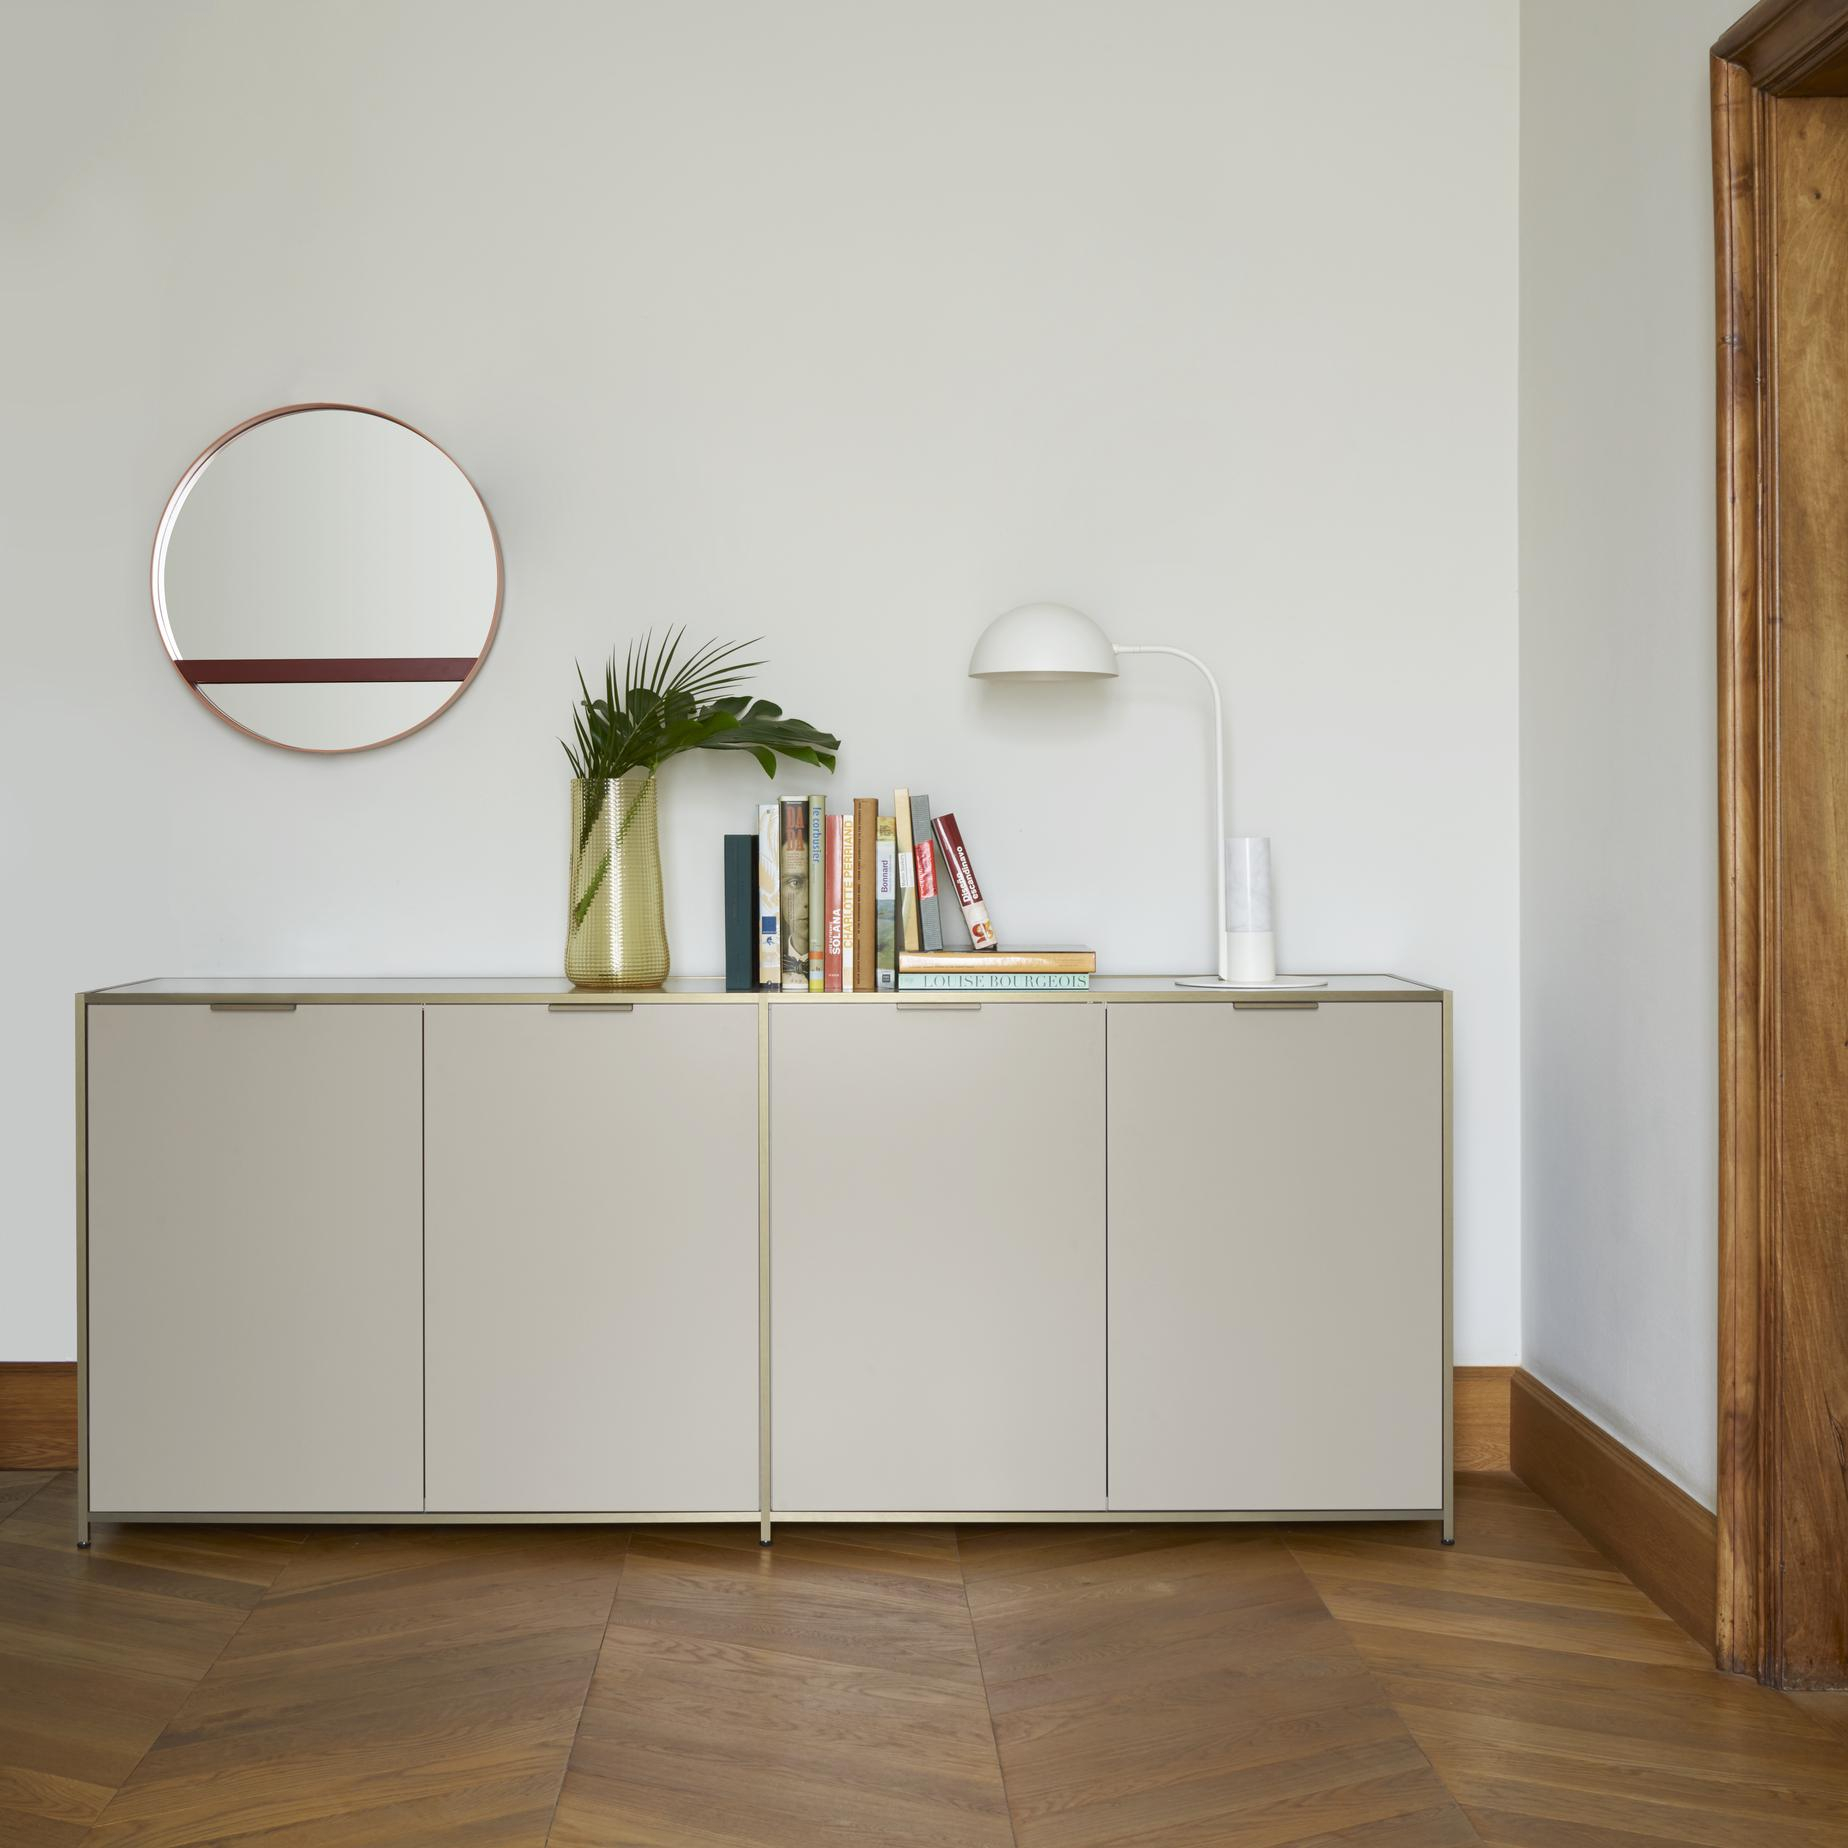 Dita Living Room, Sideboards From Designer : Pagnon For Solana Sideboards (View 8 of 30)